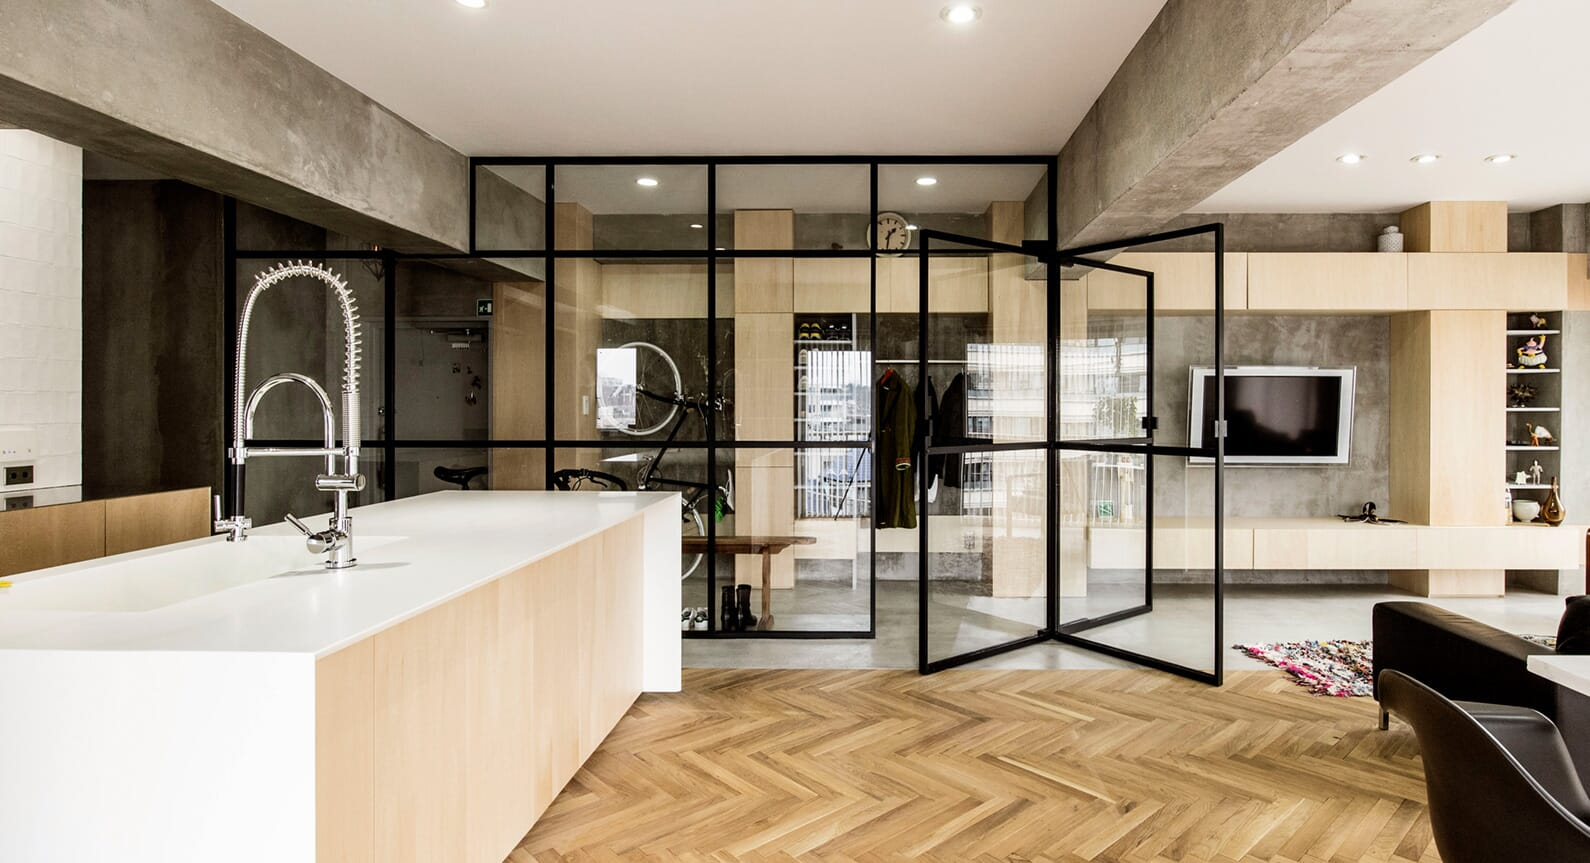 How A Simple Revolving Door Transformed This Tokyo Apartment